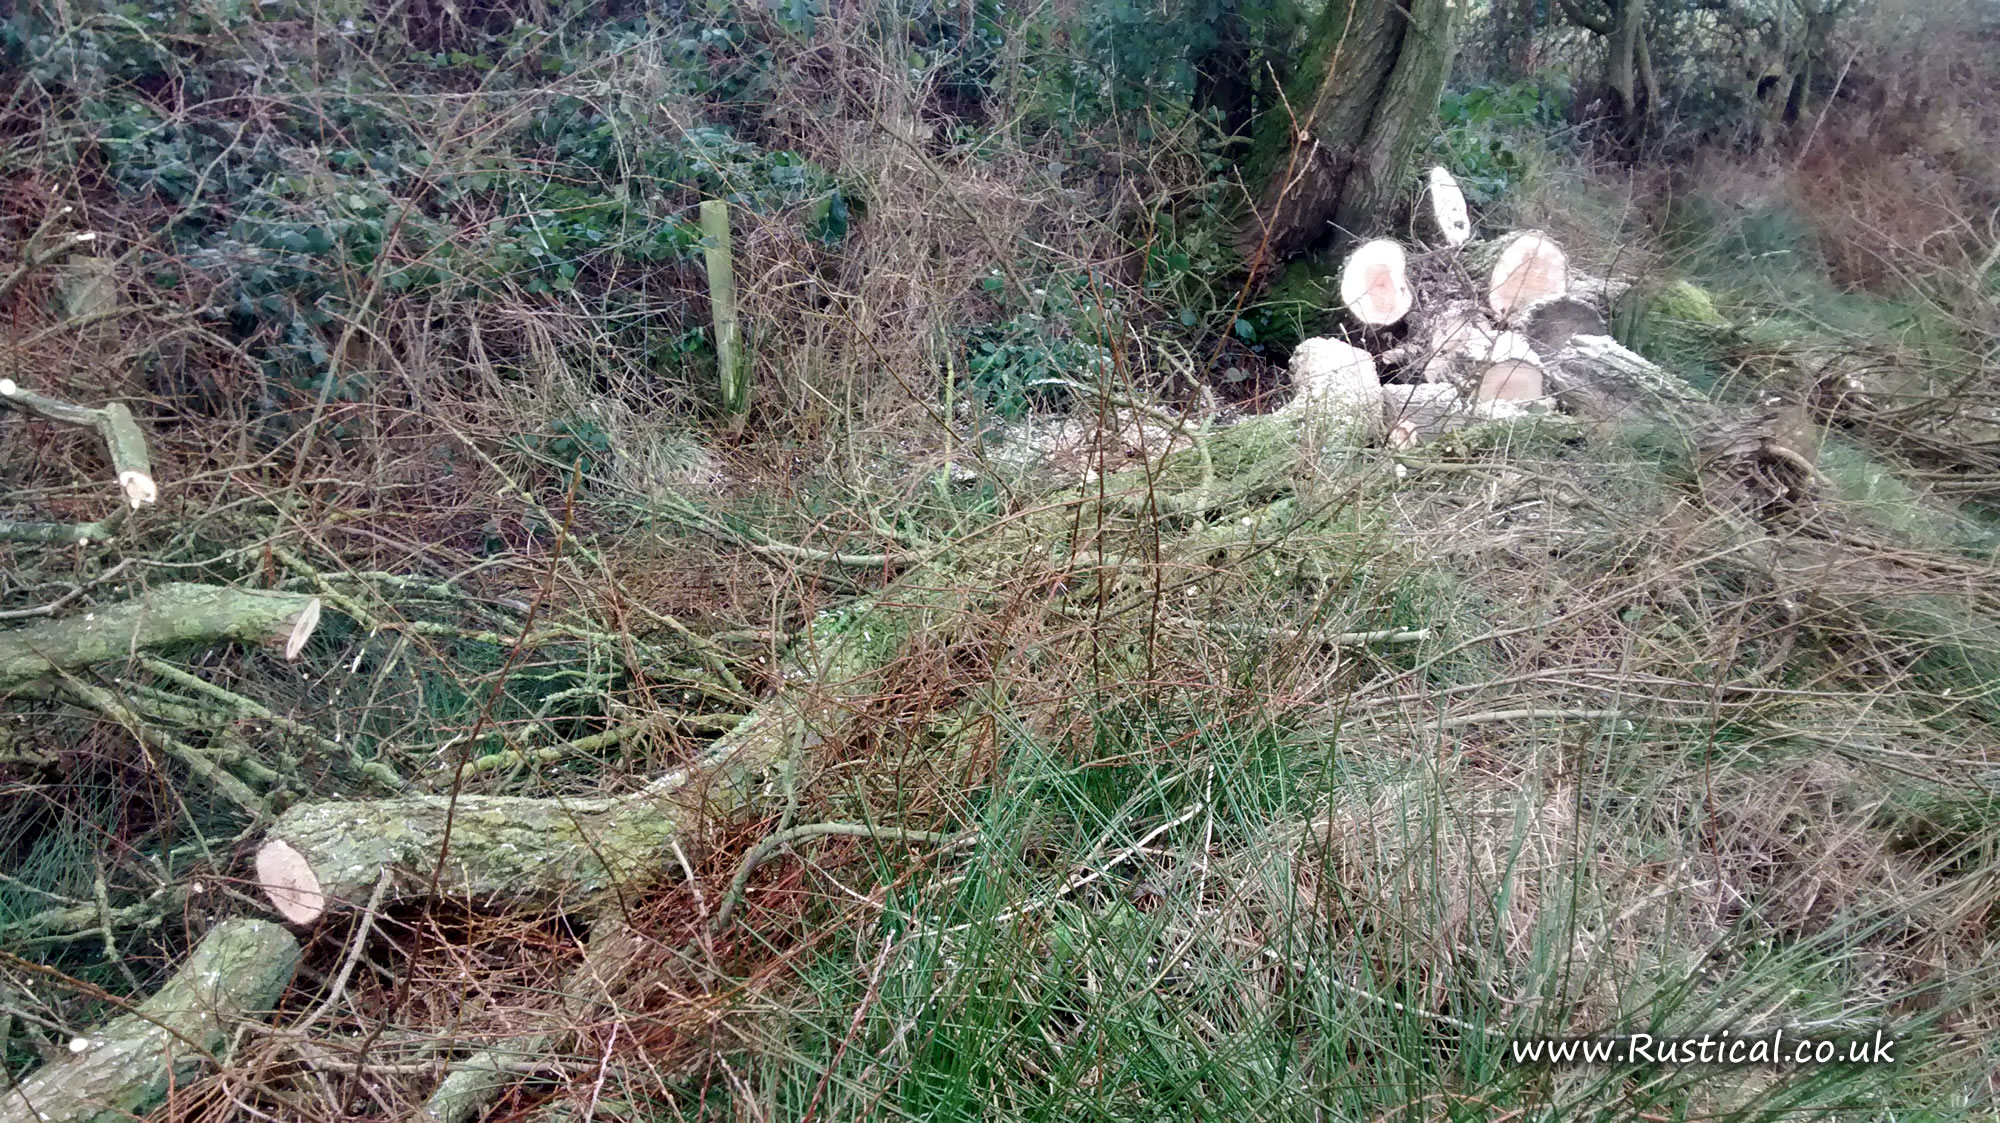 Pond 1 - Removing overhanging branches